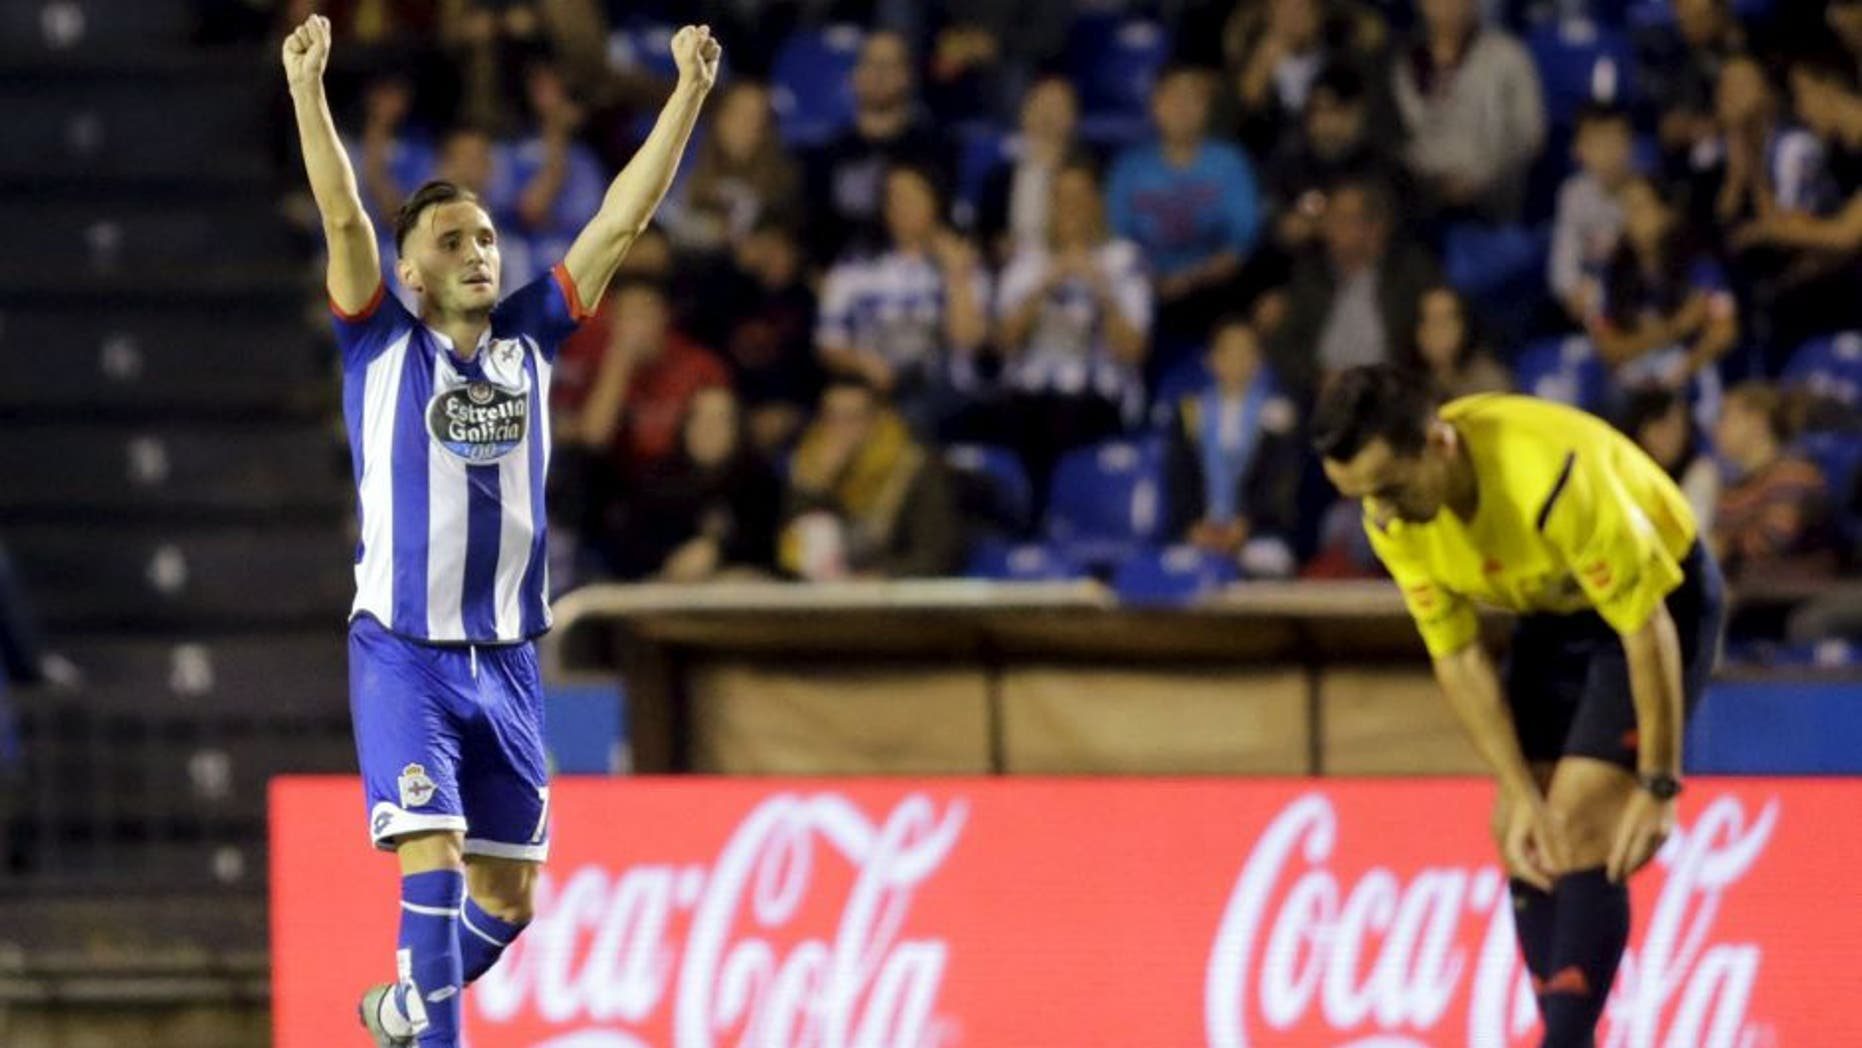 Deportivo Coruna's Lucas Perez celebrates his goal against Atletico Madrid during their Spanish First Division soccer match at Riazor stadium in Coruna, Spain October 30, 2015. REUTERS/Miguel Vidal Picture Supplied by Action Images